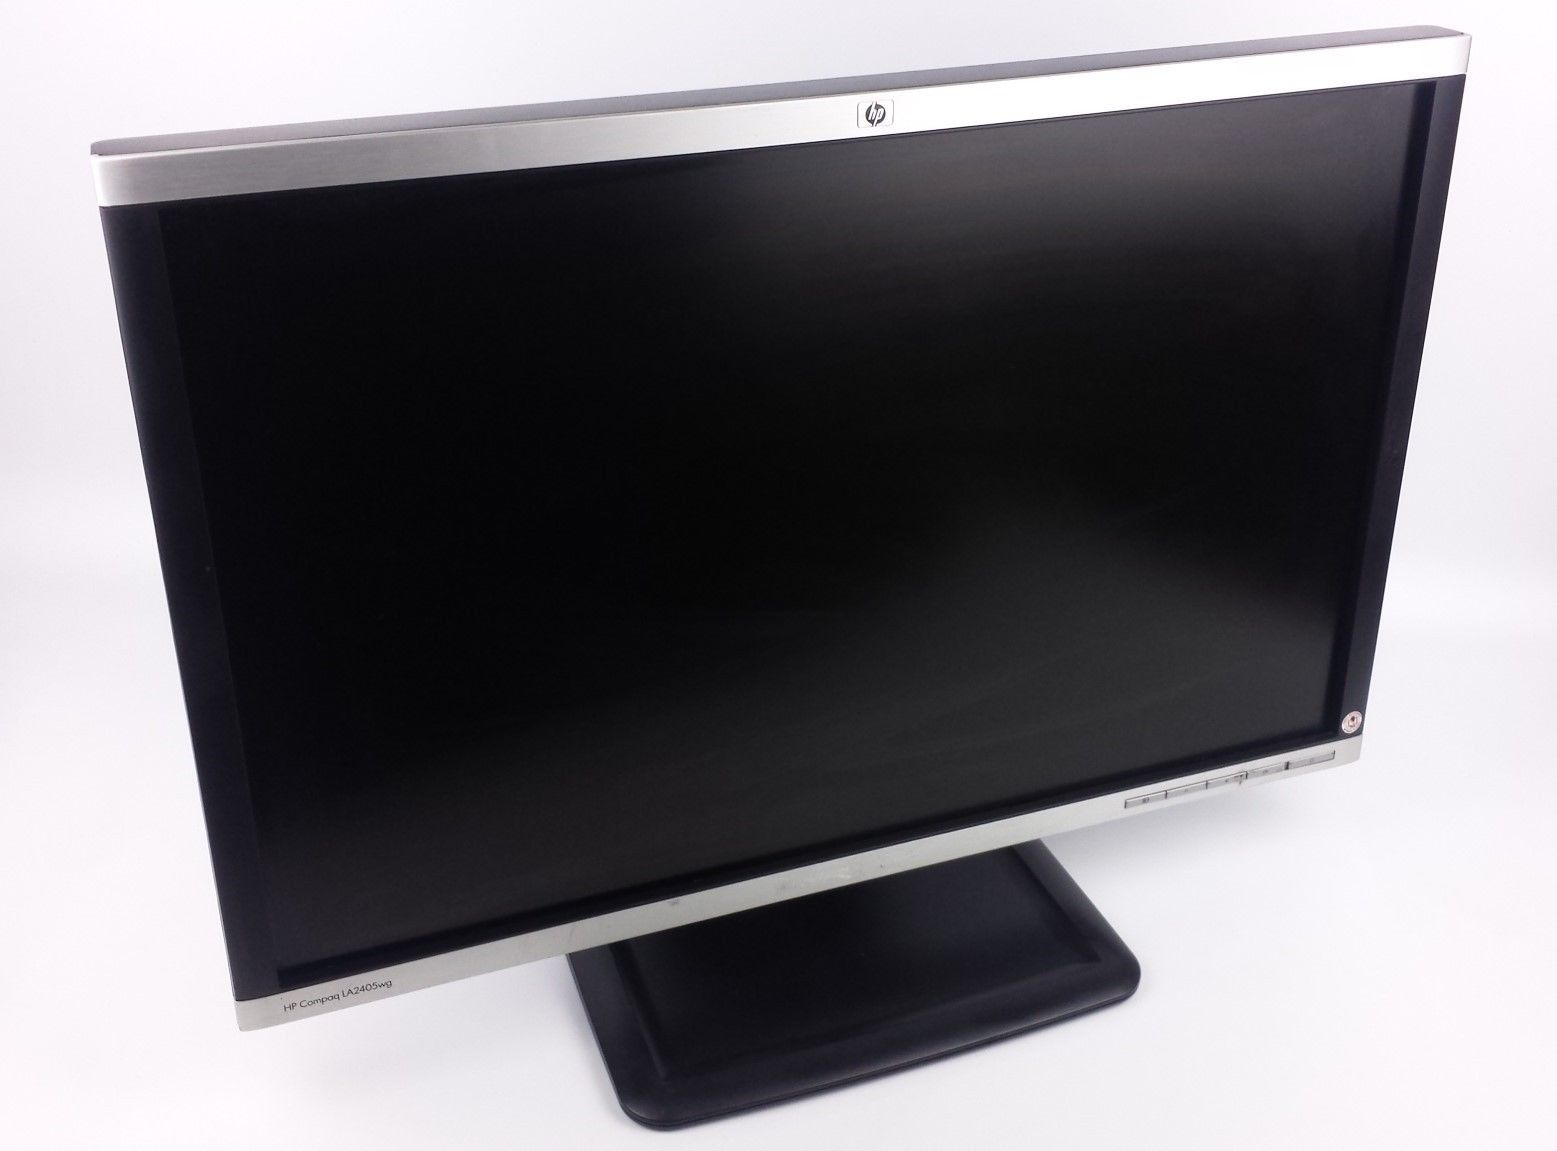 "HP LA2405wg Widescreen LCD Display Monitor 24"" NL773A w/ Power & VGA Cord"